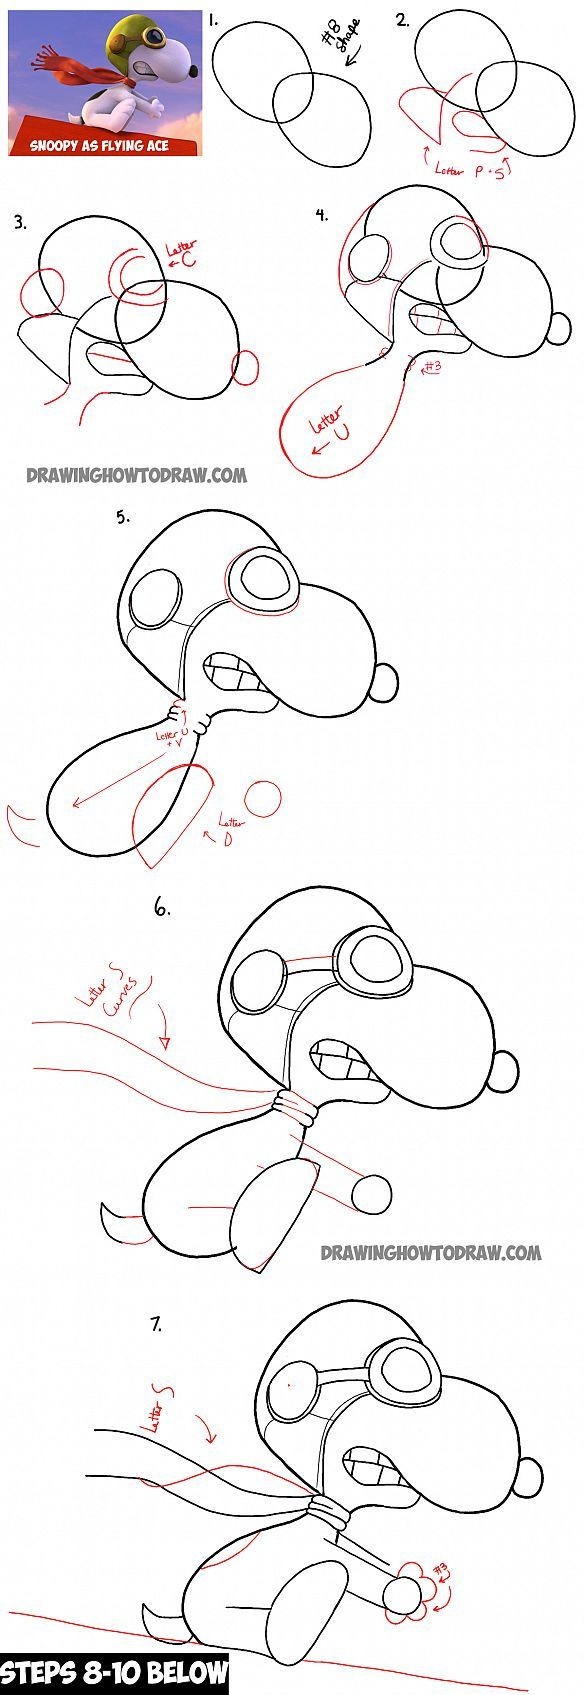 How to Draw Snoopy the Flying Ace from The Peanuts Movie with Easy Step by Step Drawing Lesson